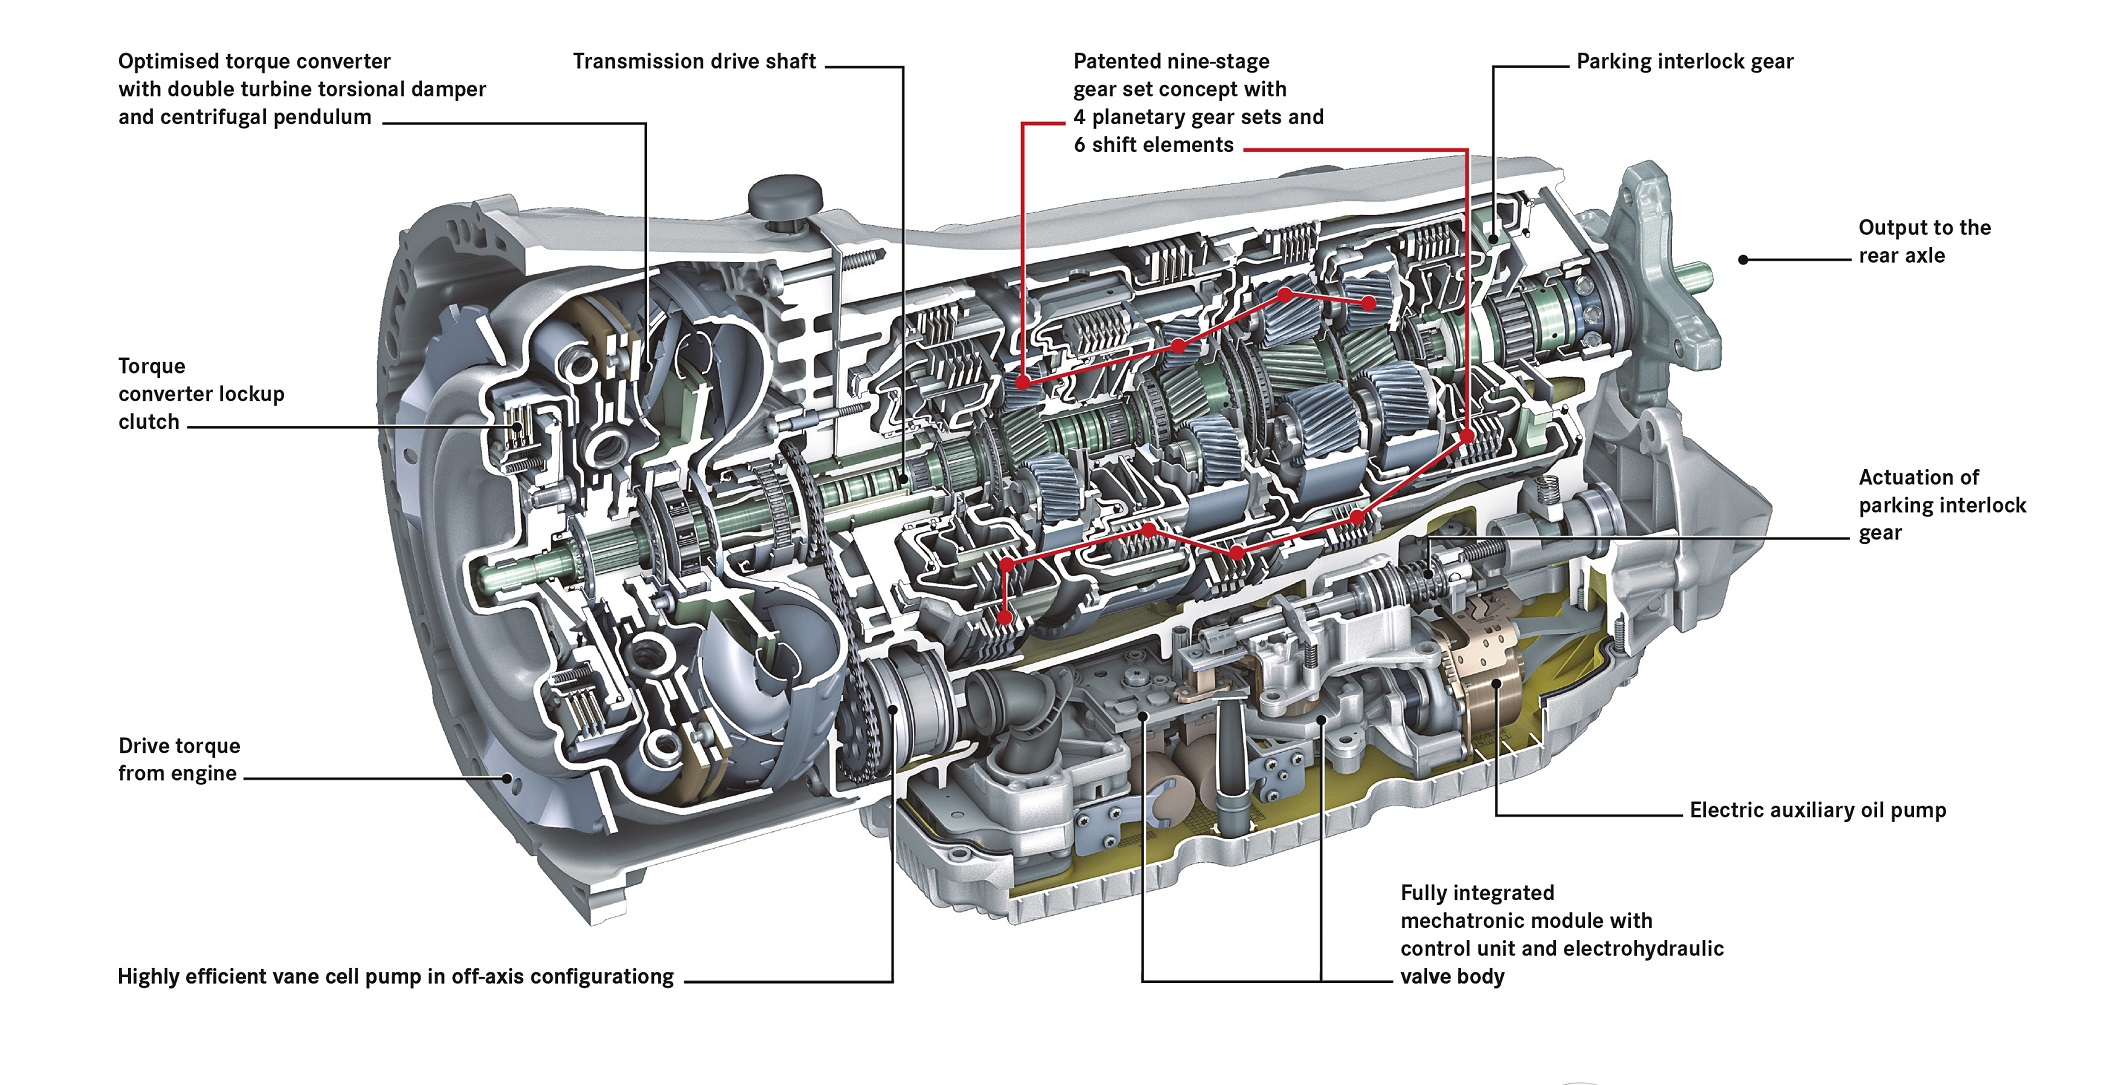 the 9g tronic automatic transmission by mercedes